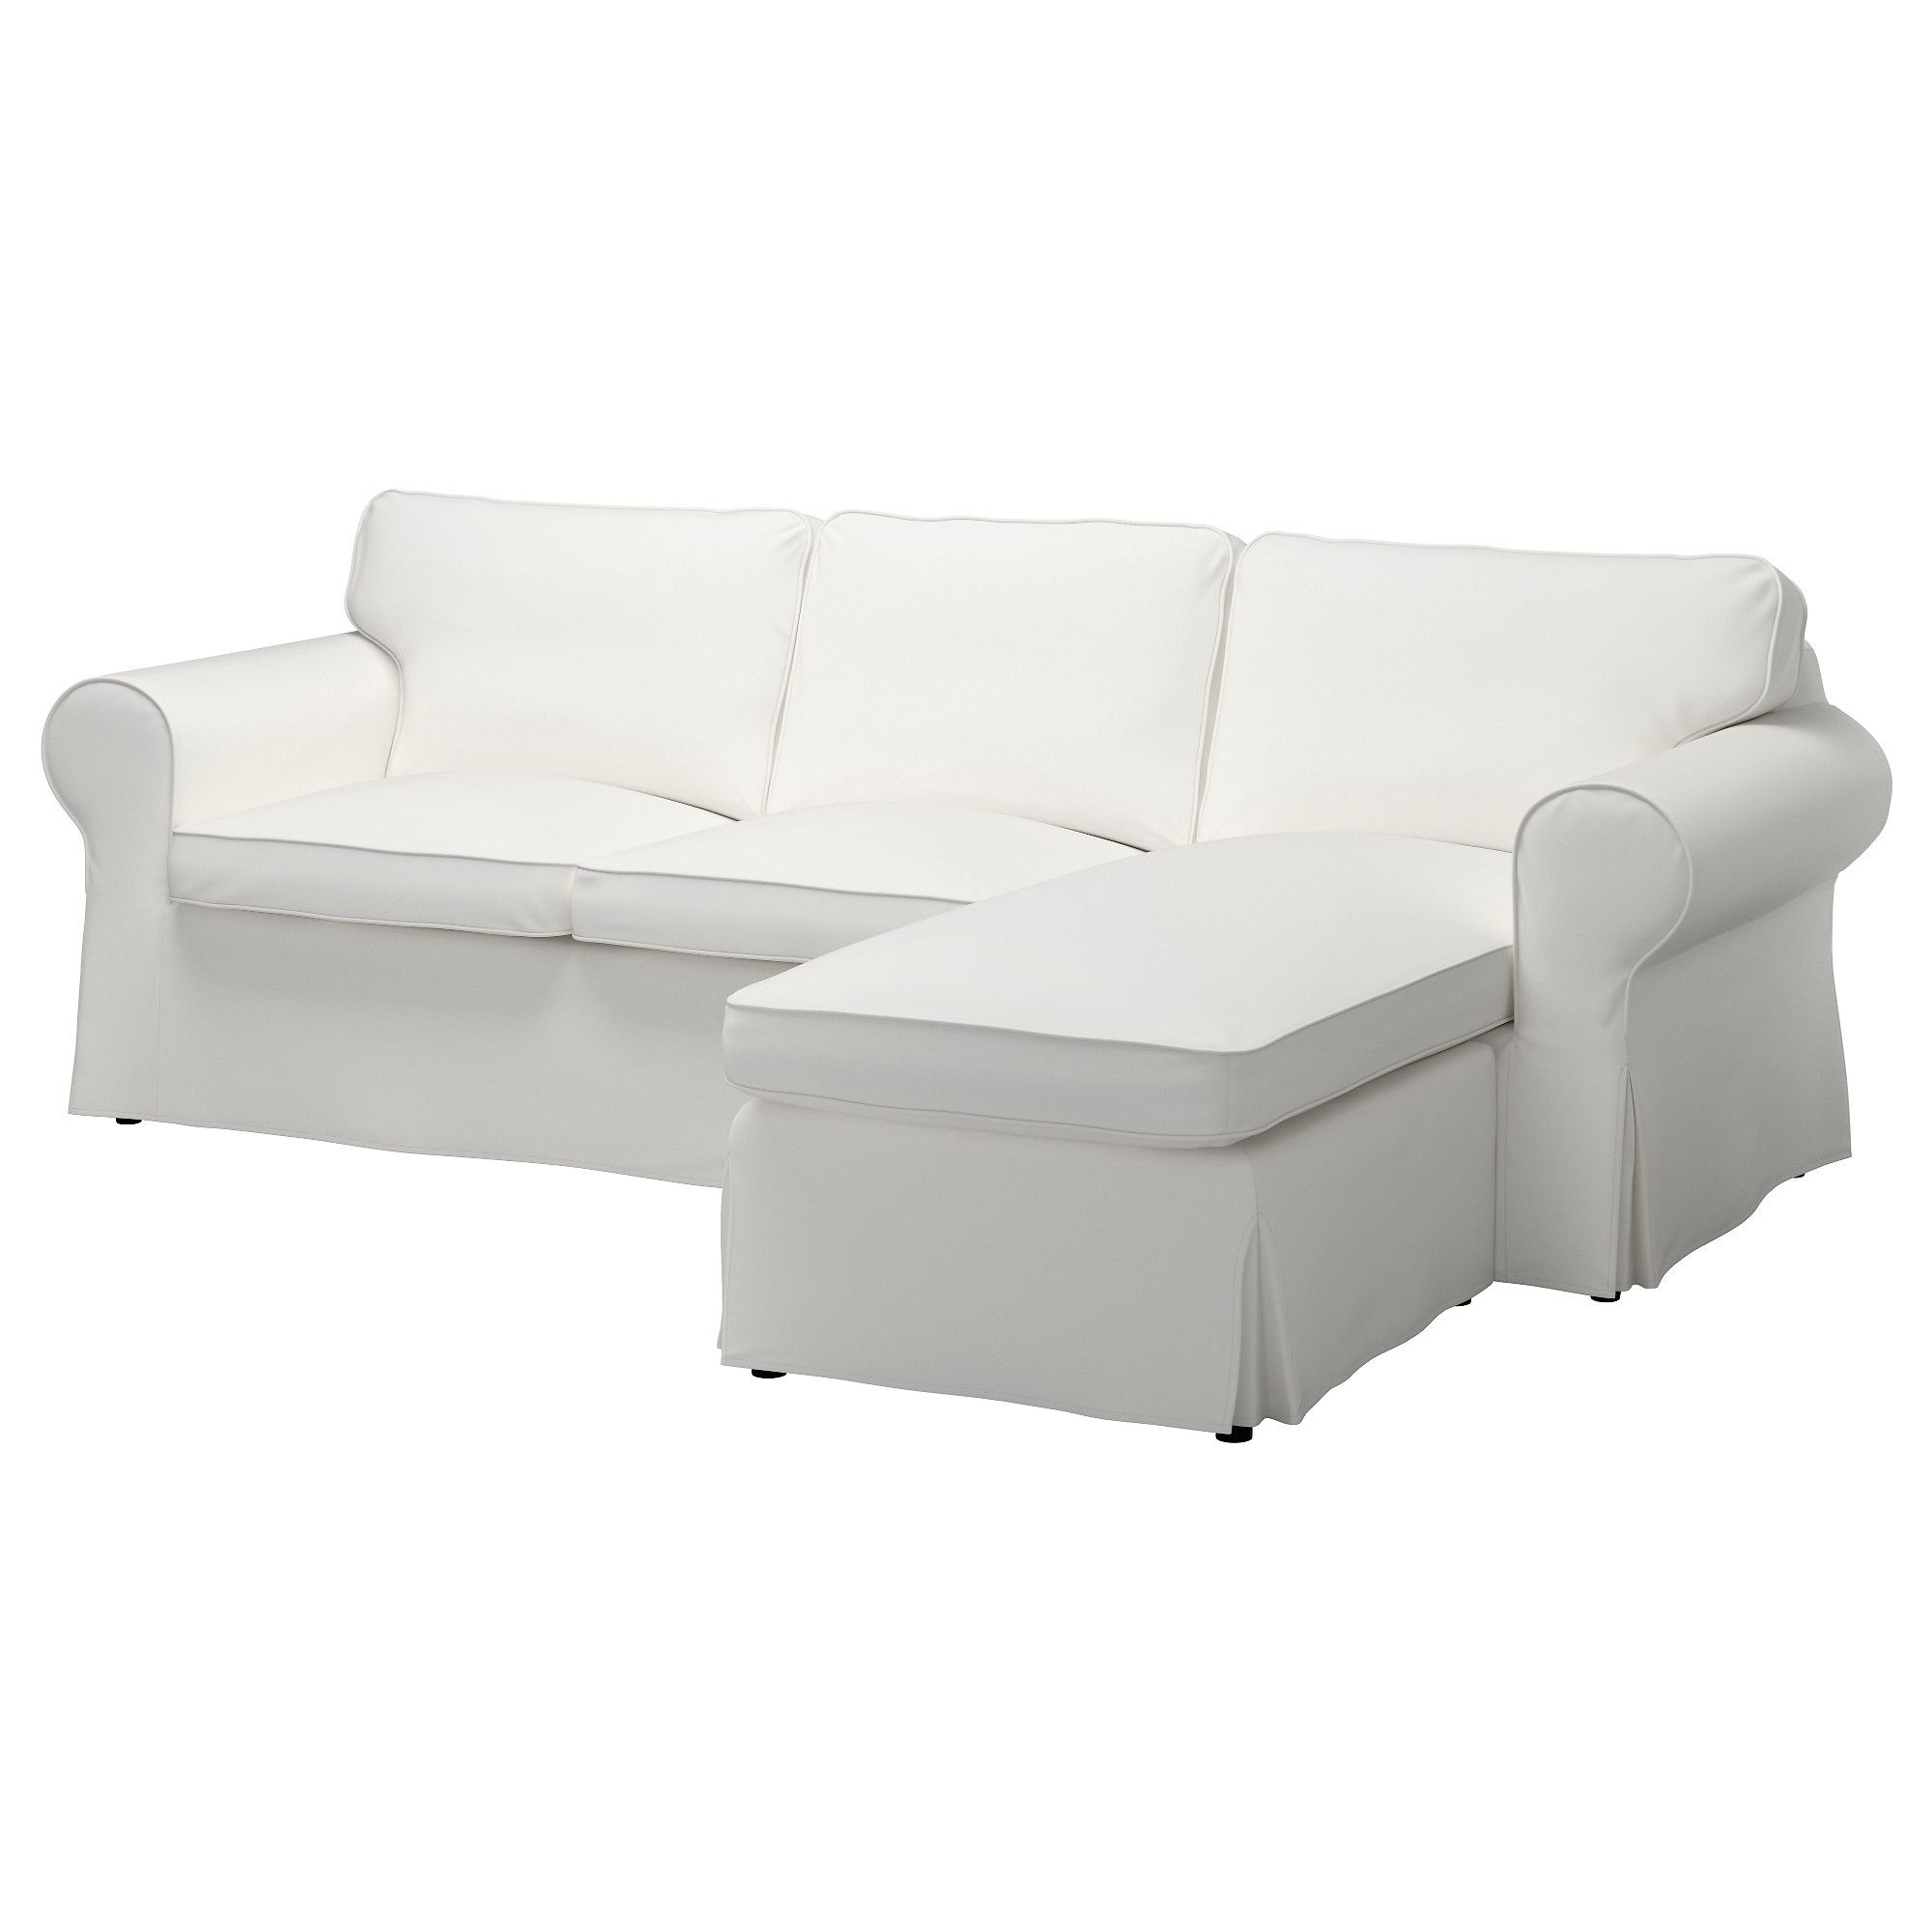 IKEA - EKTORP, Two-seat sofa and chaise longue, Vittaryd white, , Seat cushions filled with high resilience foam and polyester fibre wadding give comfortable support for your body, and easily regain their shape when you get up.Reversible back cushions filled with polyester fibres provide soft support for your back and two different sides to wear.You can place the chaise longue section to the left or right of the sofa, and switch whenever you like.The cover is easy to keep clean as it is…